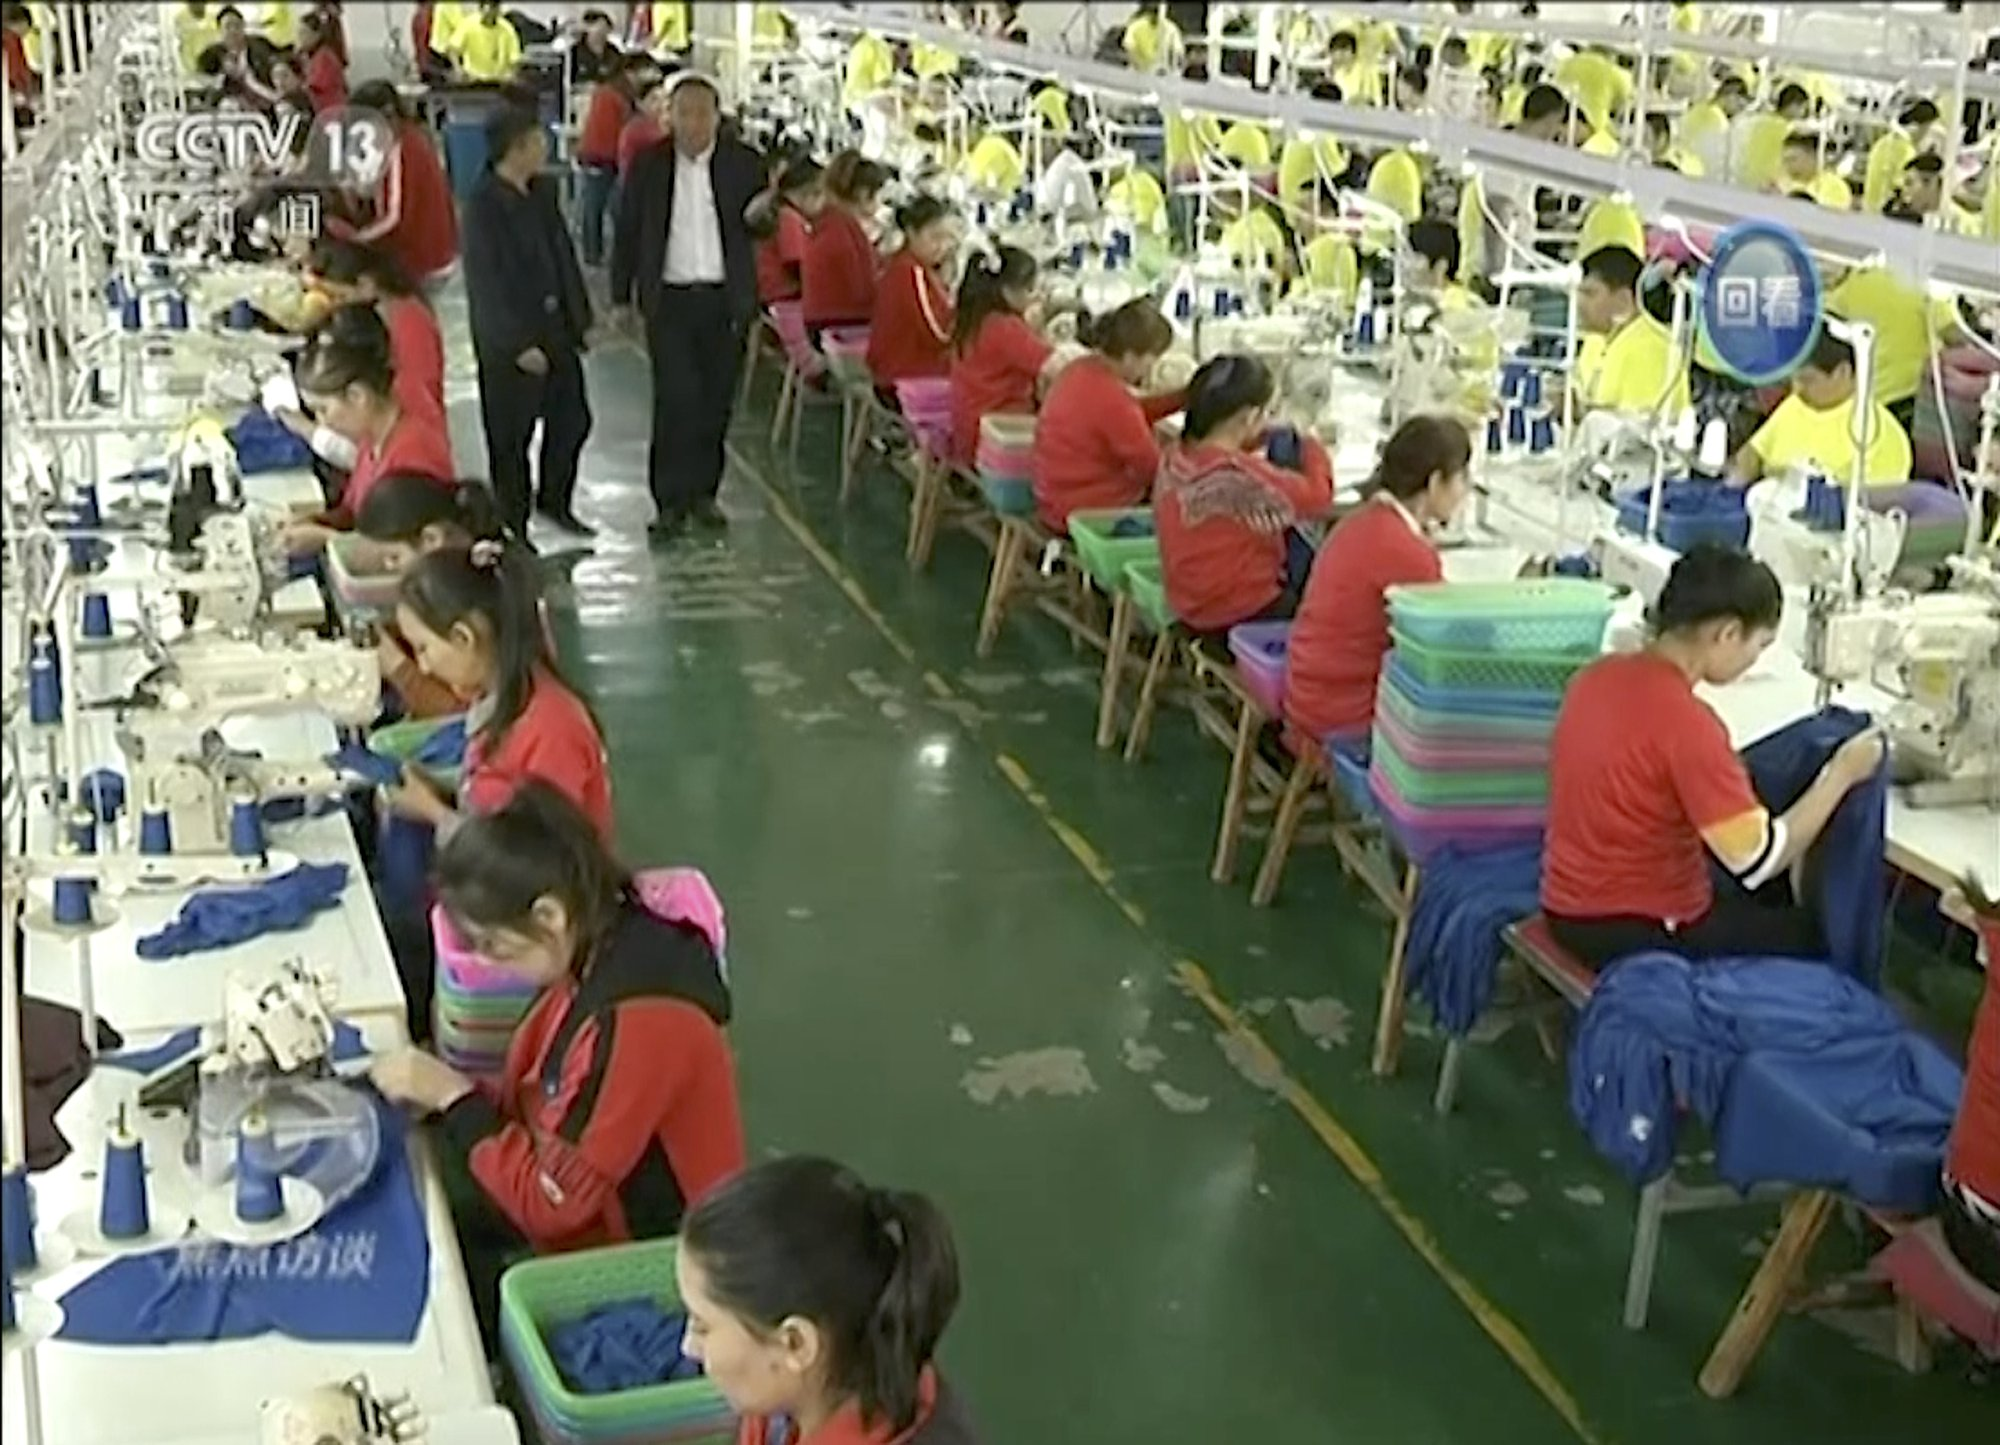 CCTV image of 'trainees' working at a garment factory.